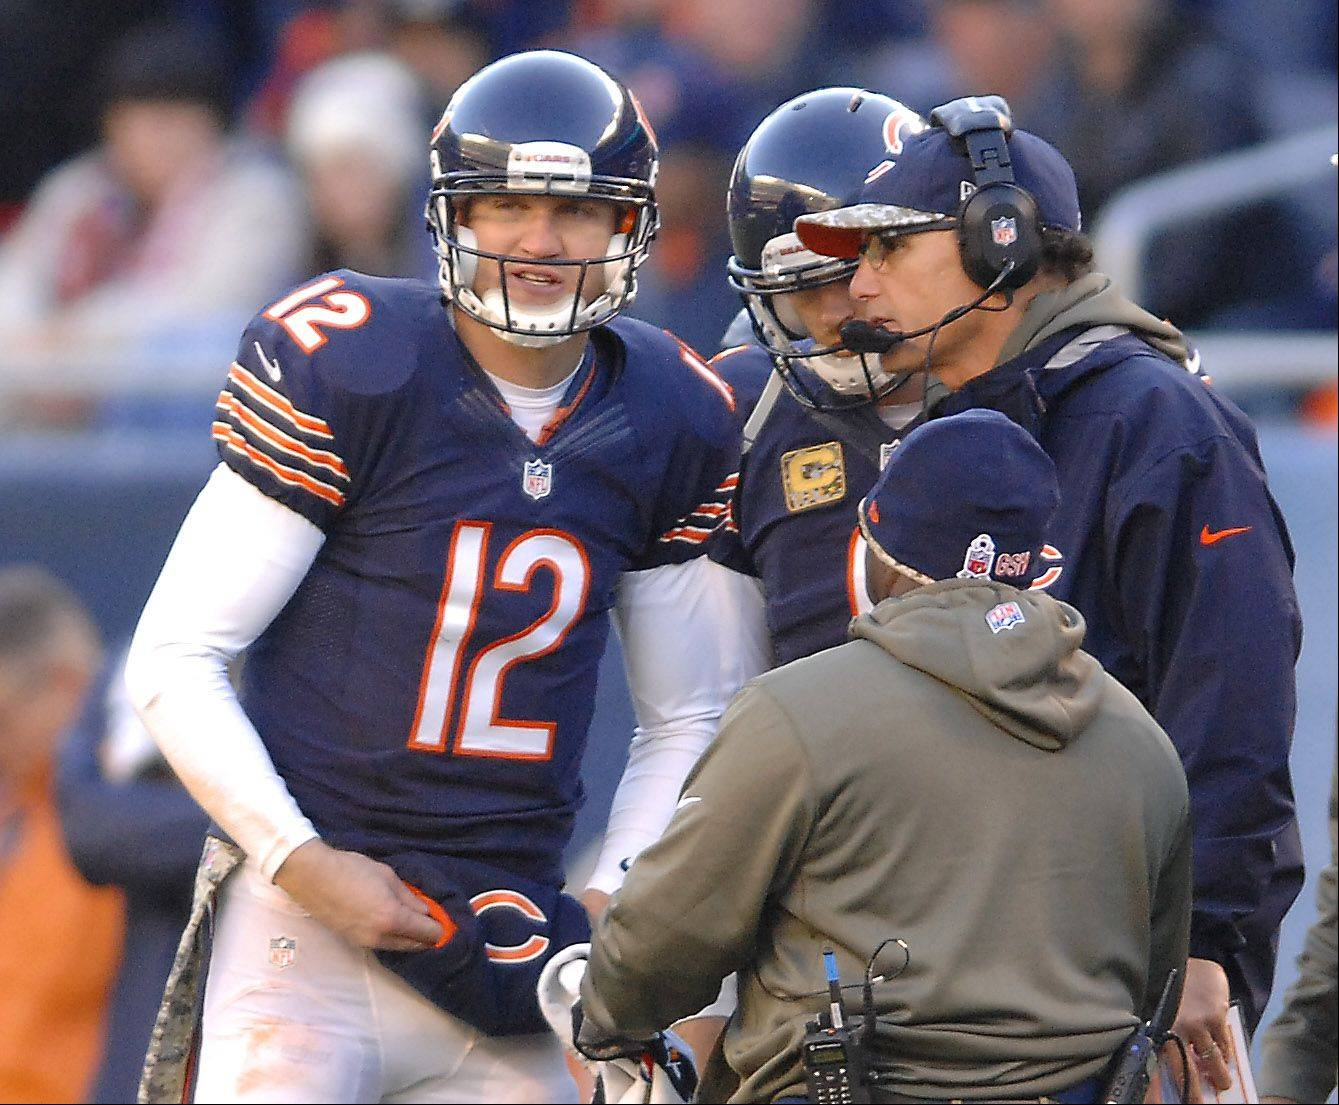 Bears quarterback Josh McCown (12) and Jay Cutler confer with coach Marc Trestman.